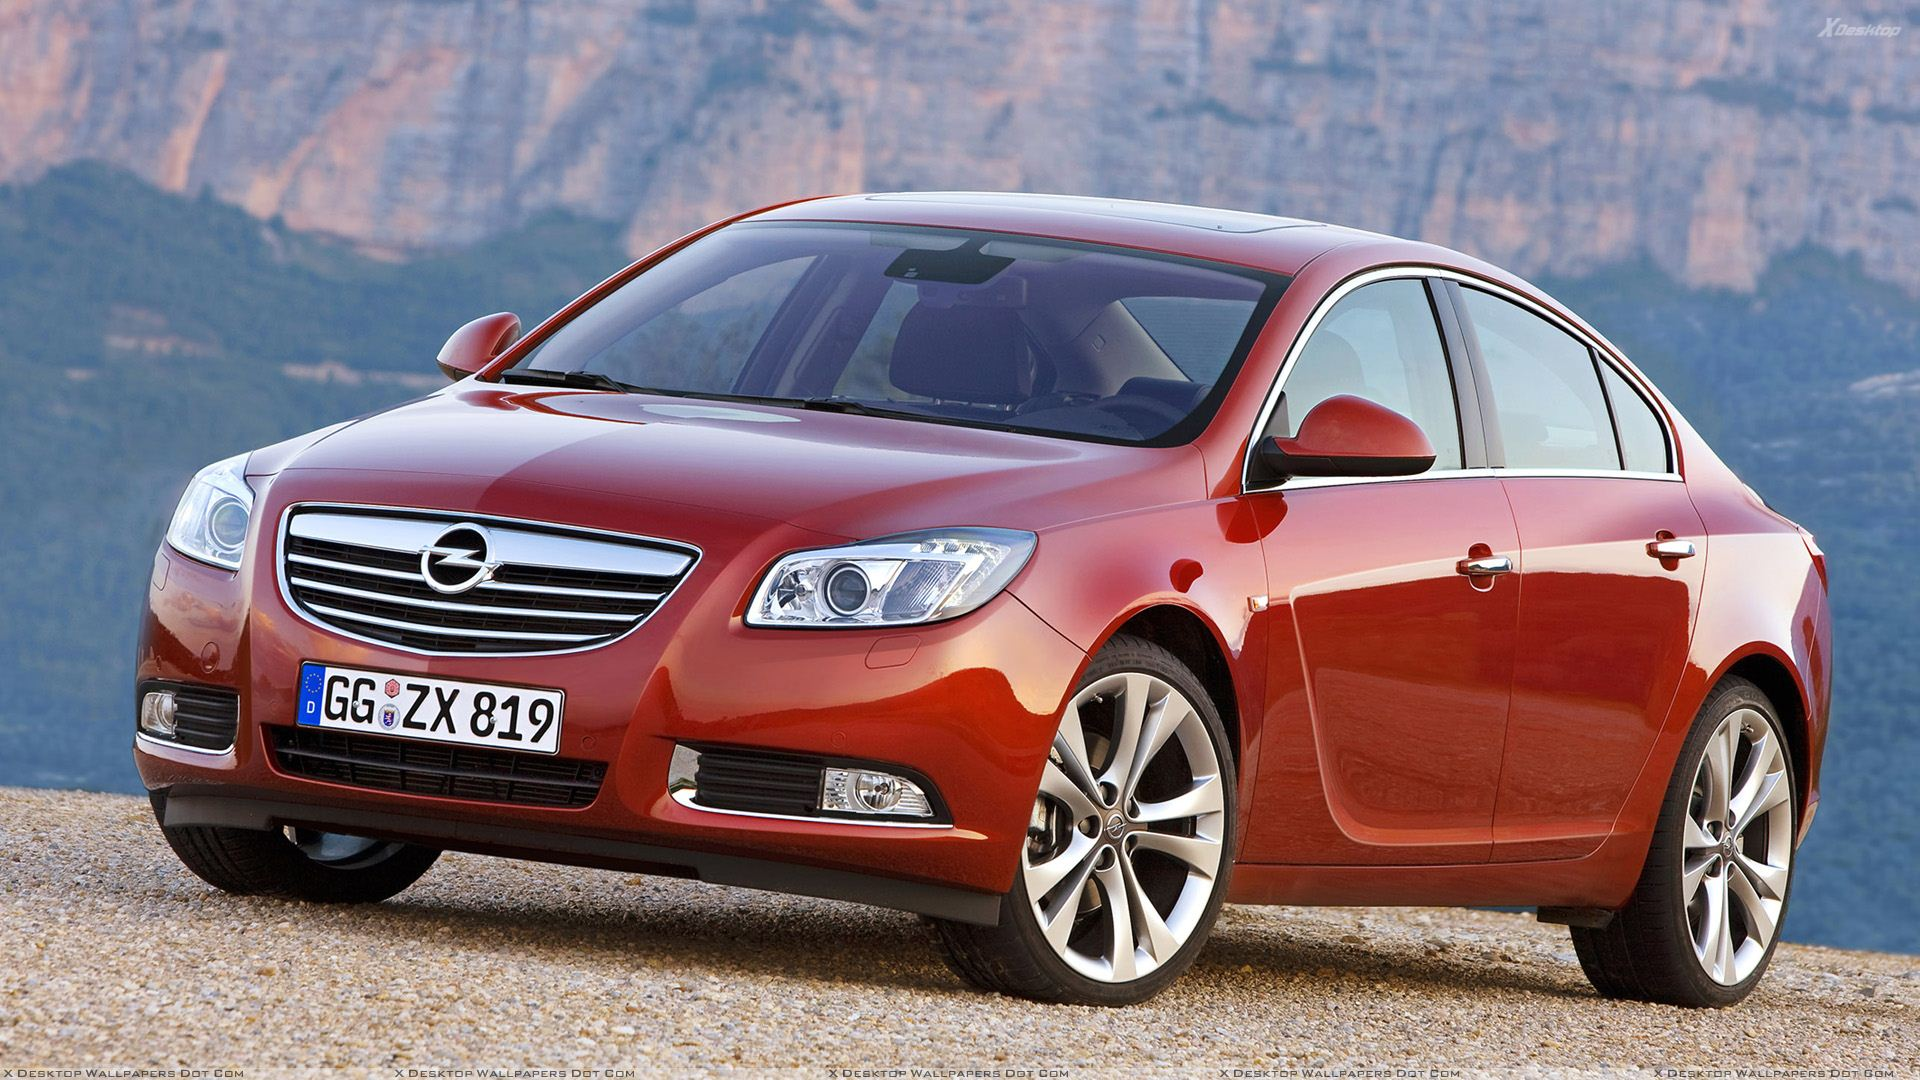 2009 opel insignia in red front side pose wallpaper. Black Bedroom Furniture Sets. Home Design Ideas